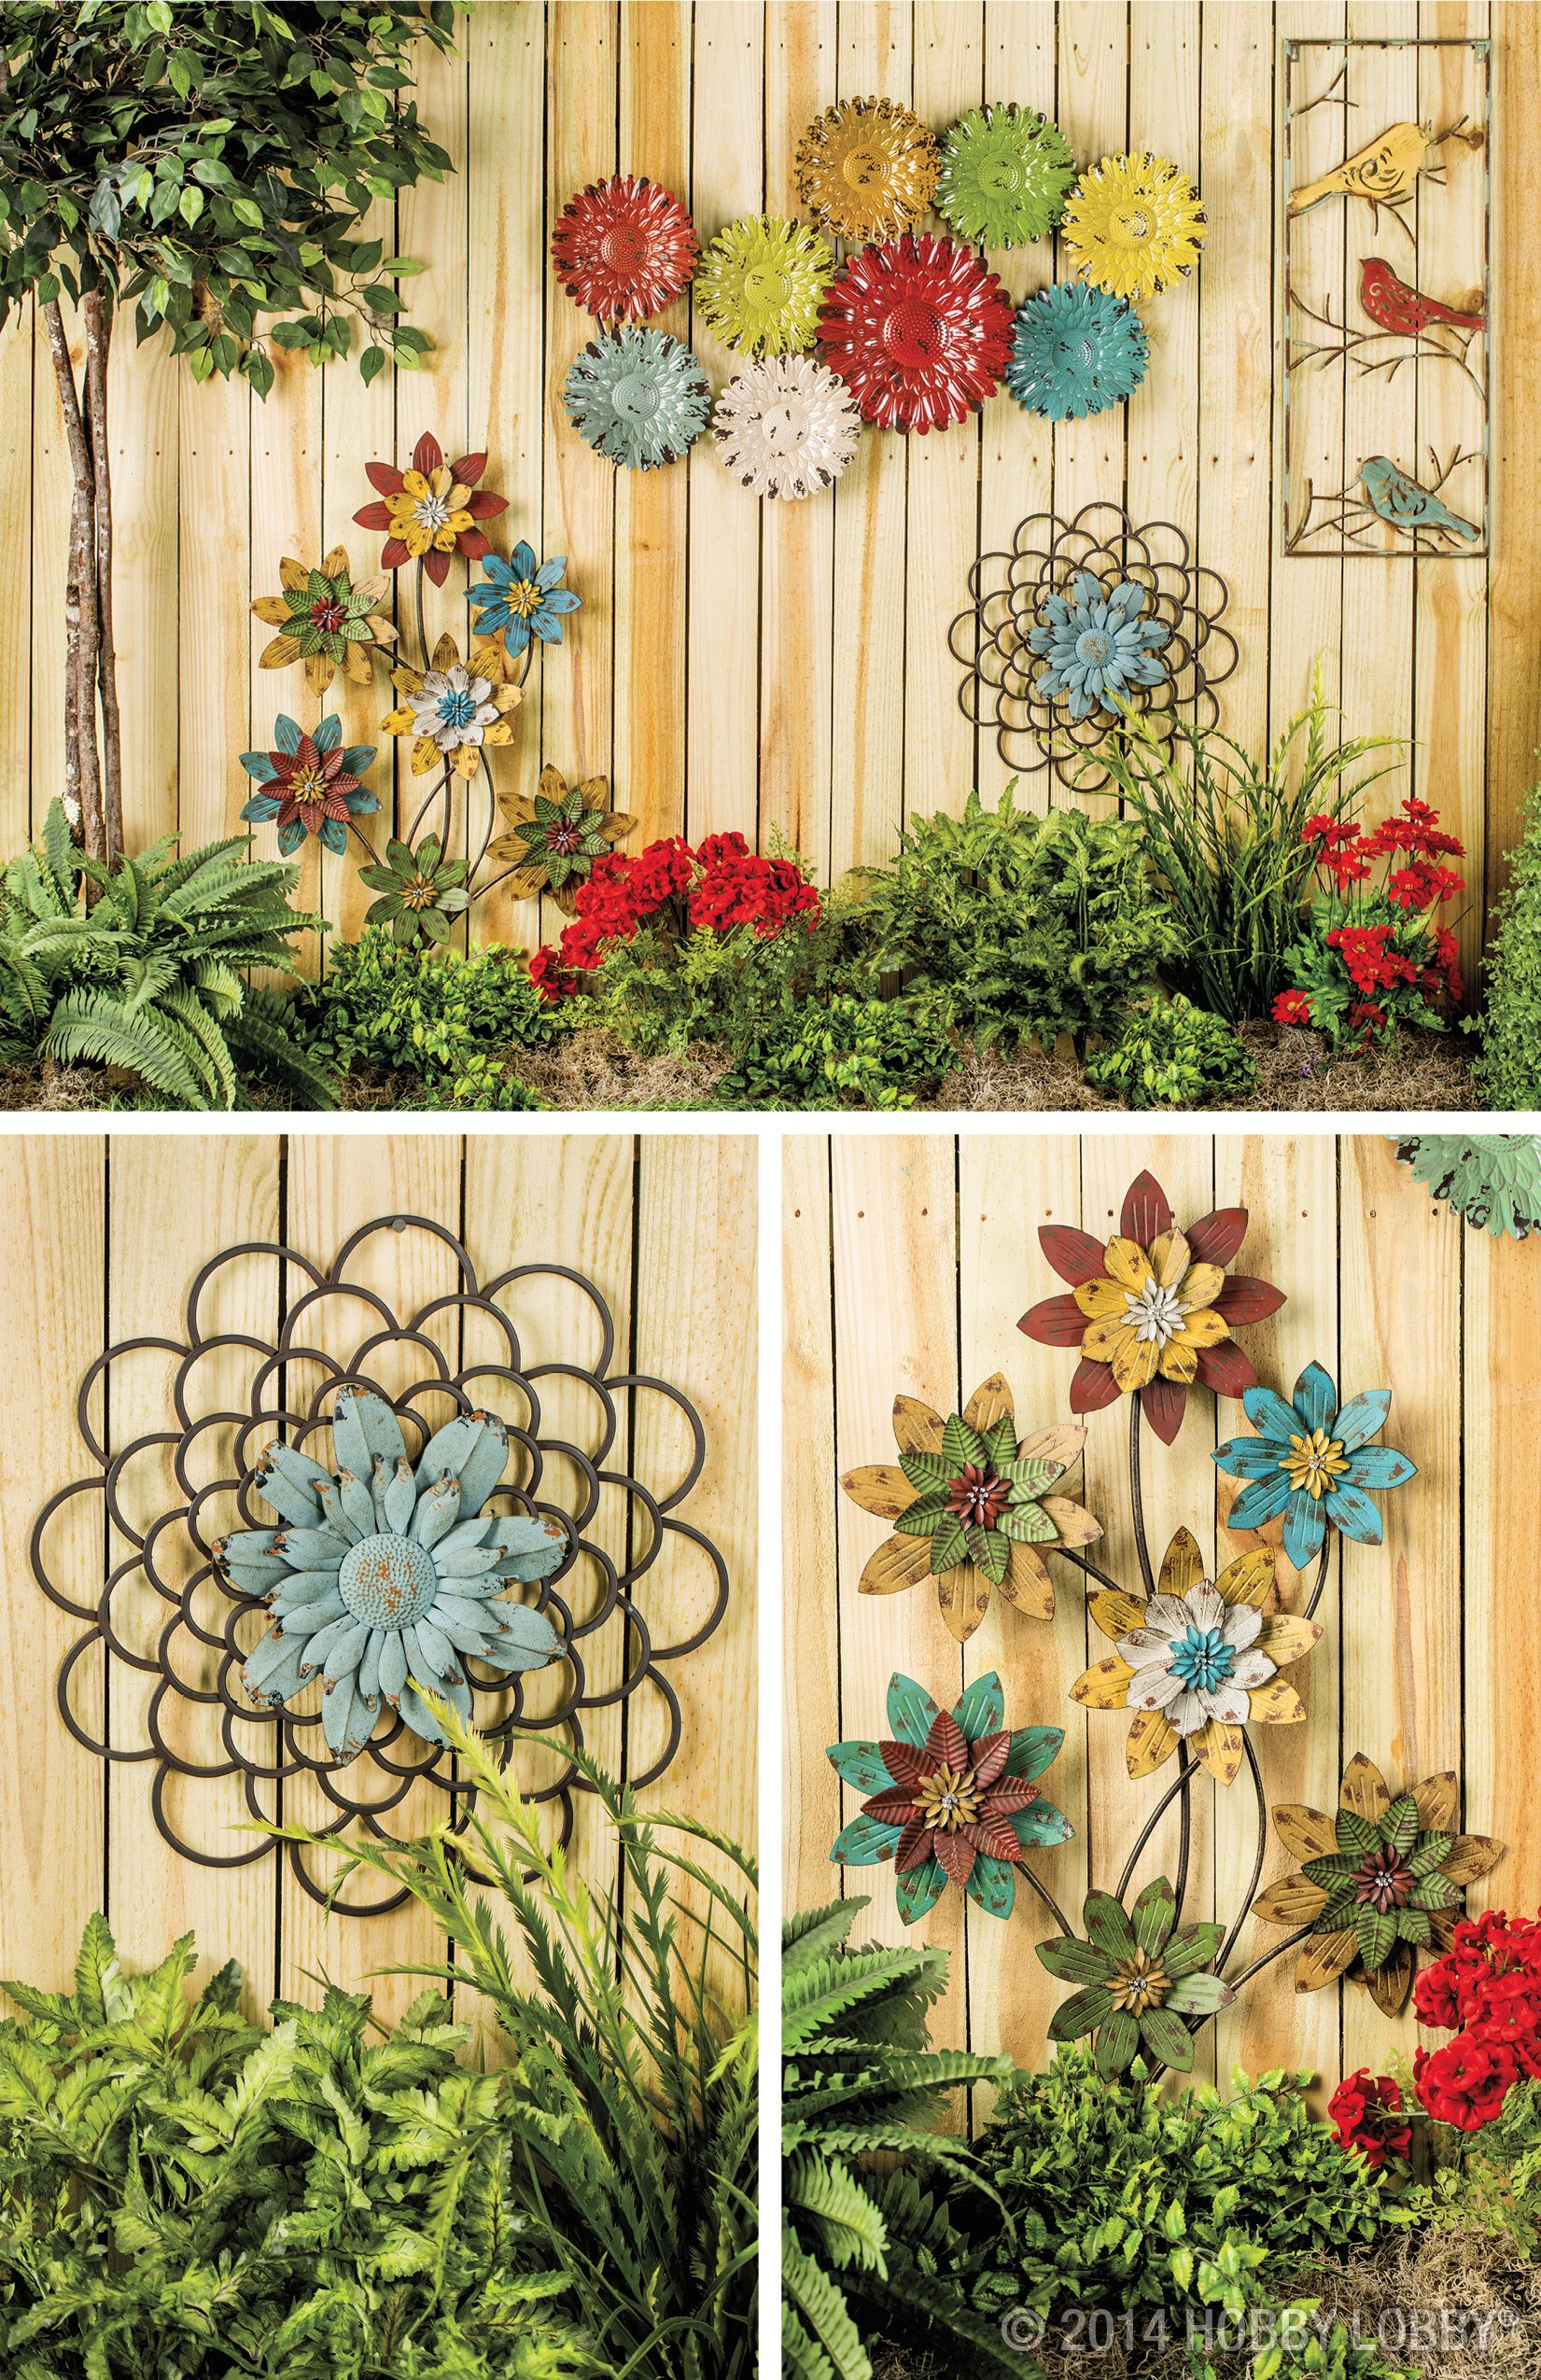 63 Hobby Lobby Decor Ideas | Hobby Lobby Decor, Decor, Hobby With Regard To Most Recently Released Blended Fabric Spring Party Wall Hangings (View 16 of 20)